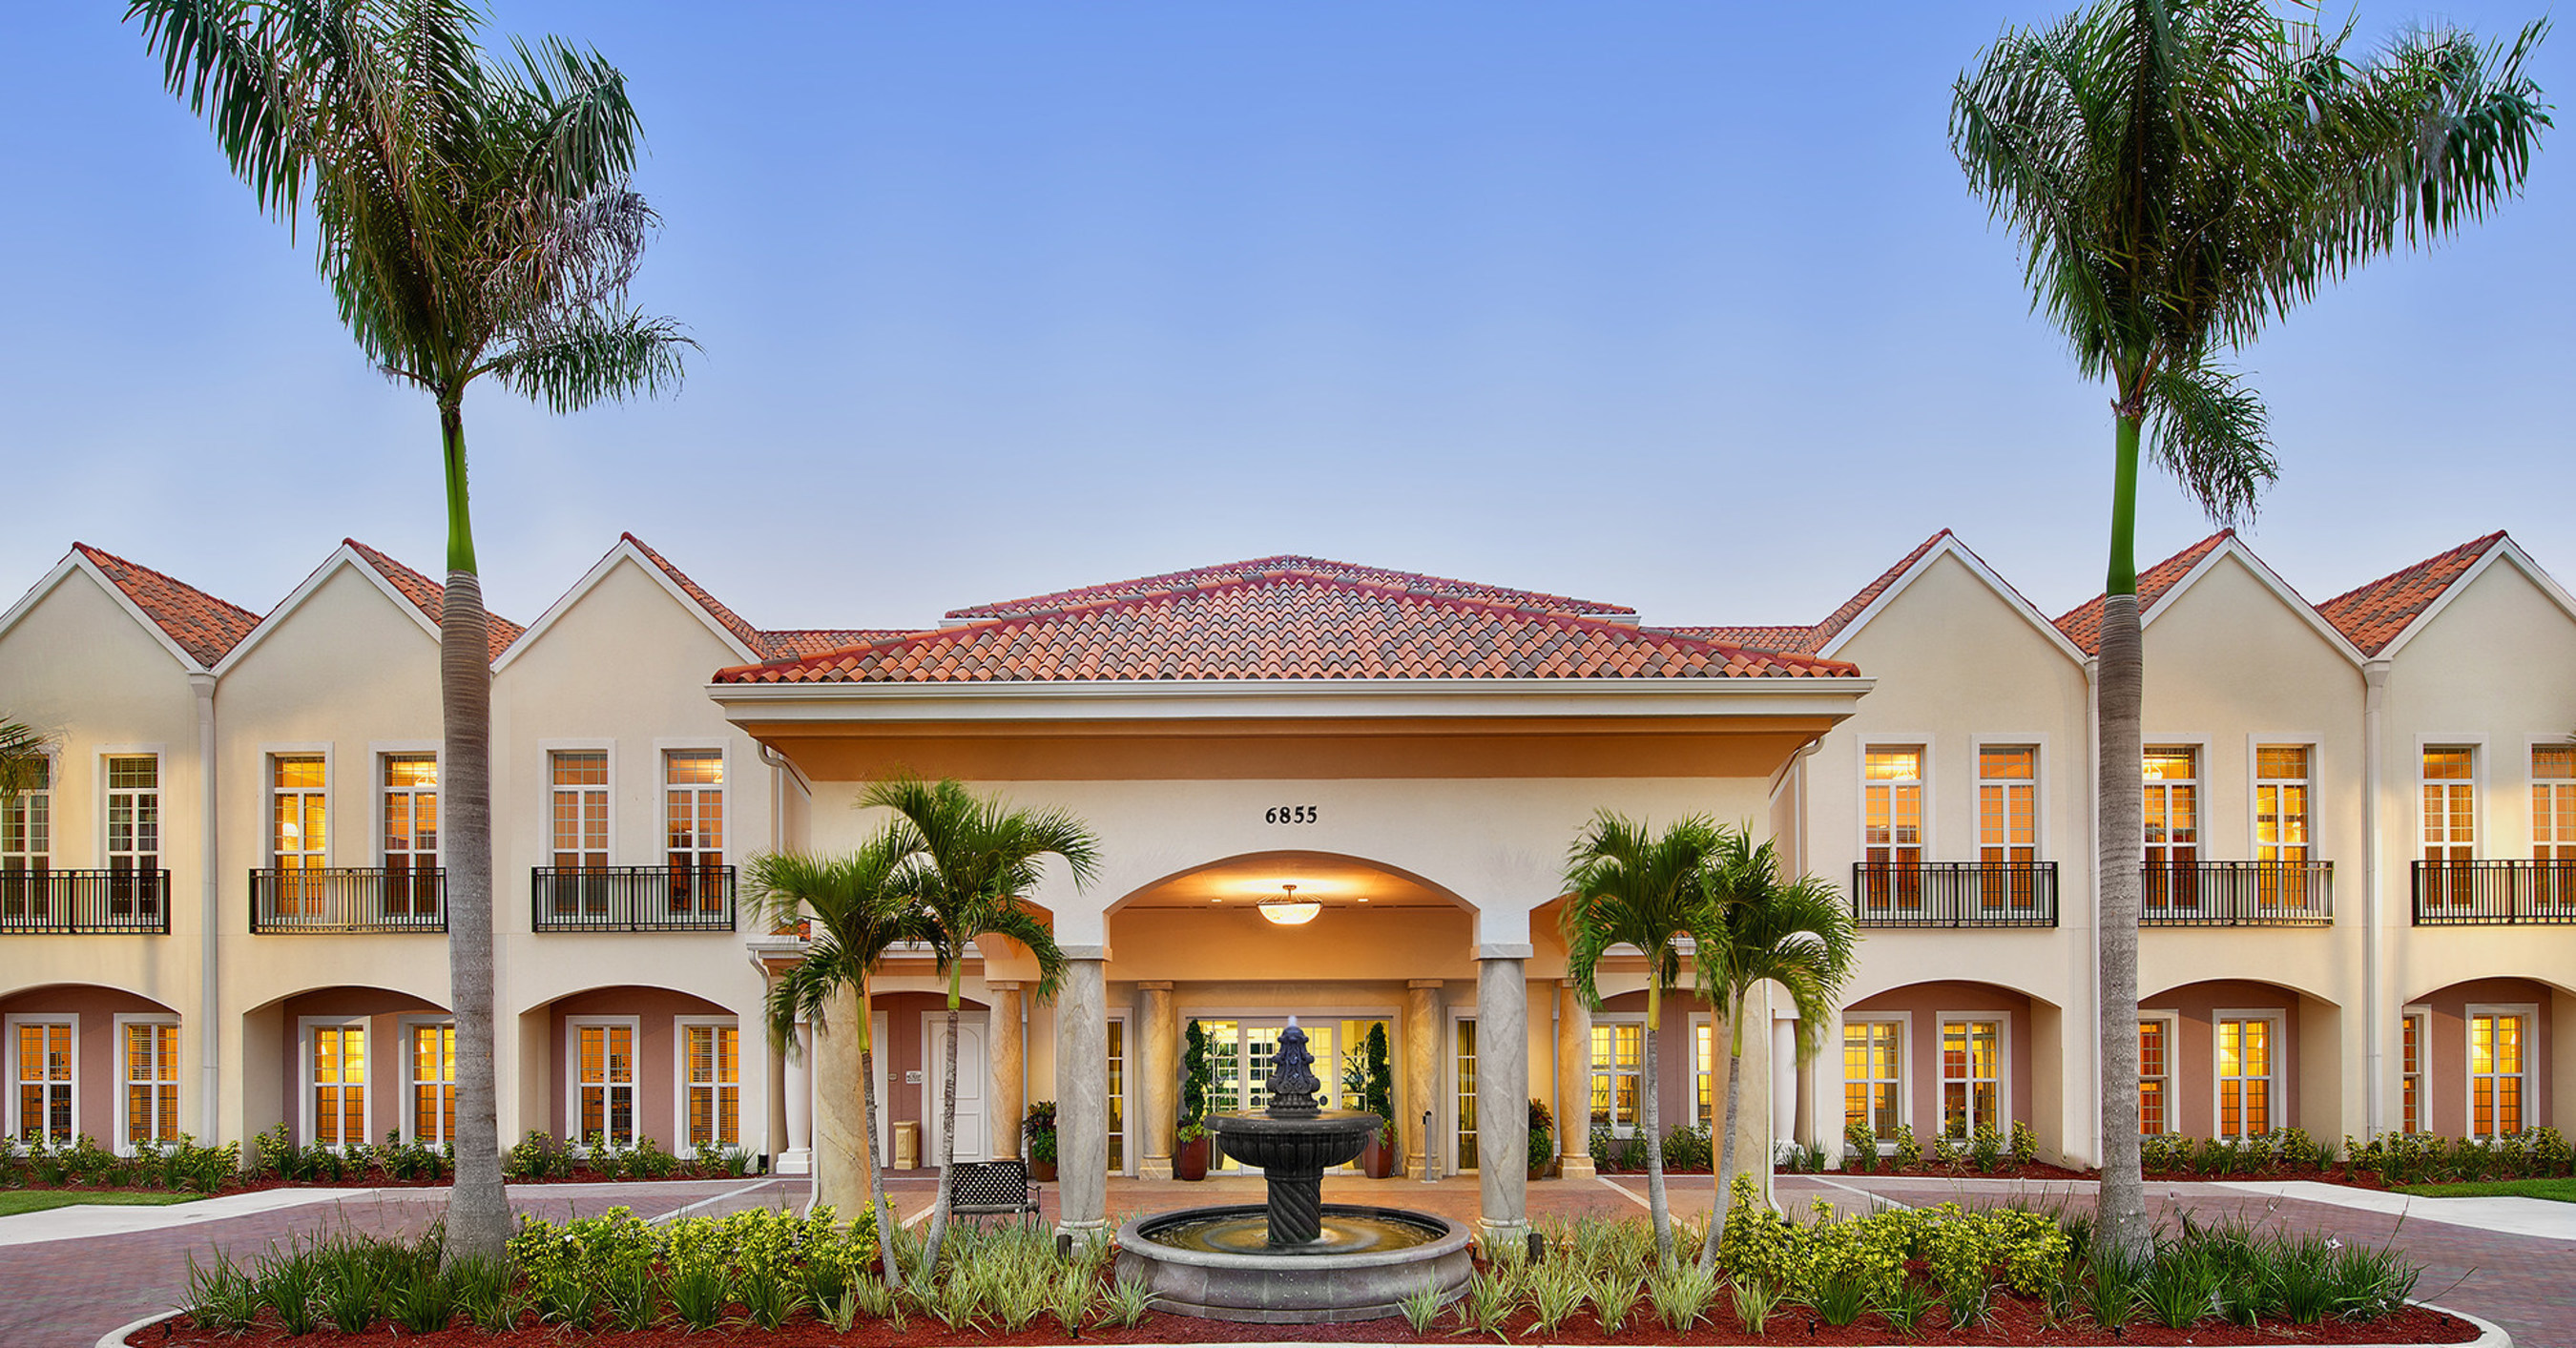 Villa at Terracina Grand Receives Silver Award in the 2016 Best of 55+ Housing Awards Competition